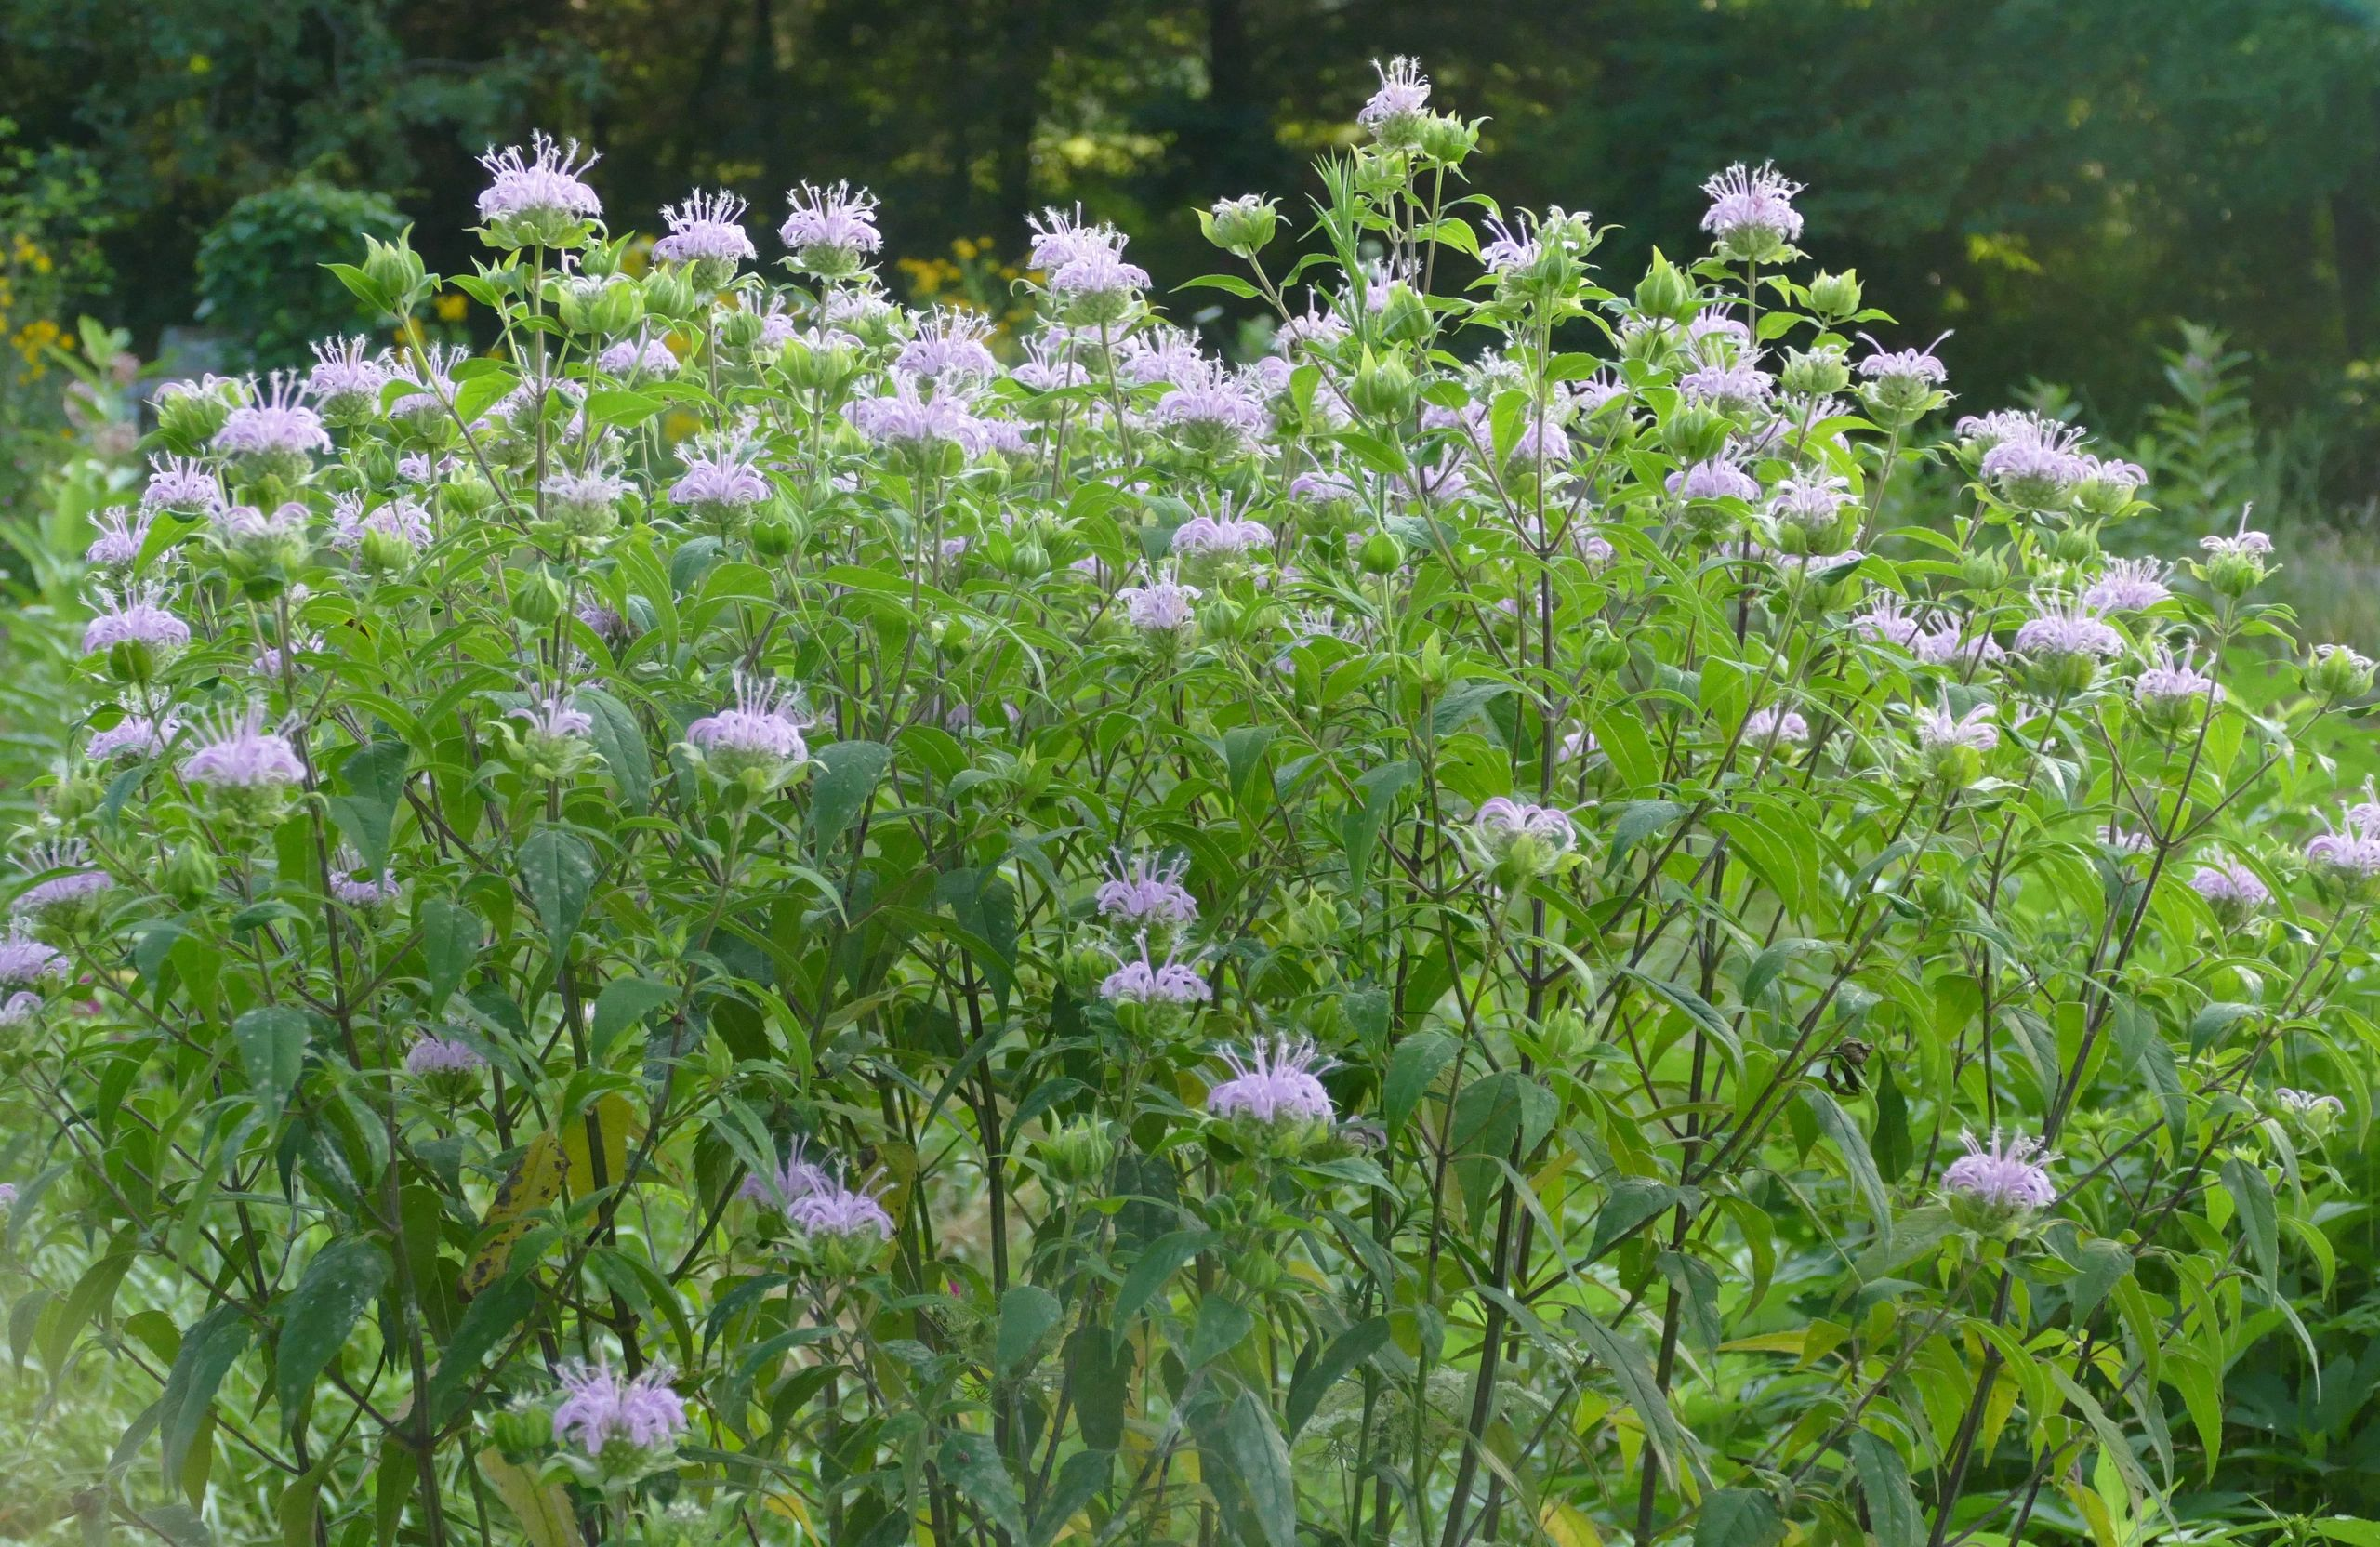 "{""blocks"":[{""key"":""518af"",""text"":""Monarda fistulosa Wild Bergamot Beebalm - potted plants email john@easywildflowers.com"",""type"":""unstyled"",""depth"":0,""inlineStyleRanges"":[],""entityRanges"":[],""data"":{}}],""entityMap"":{}}"